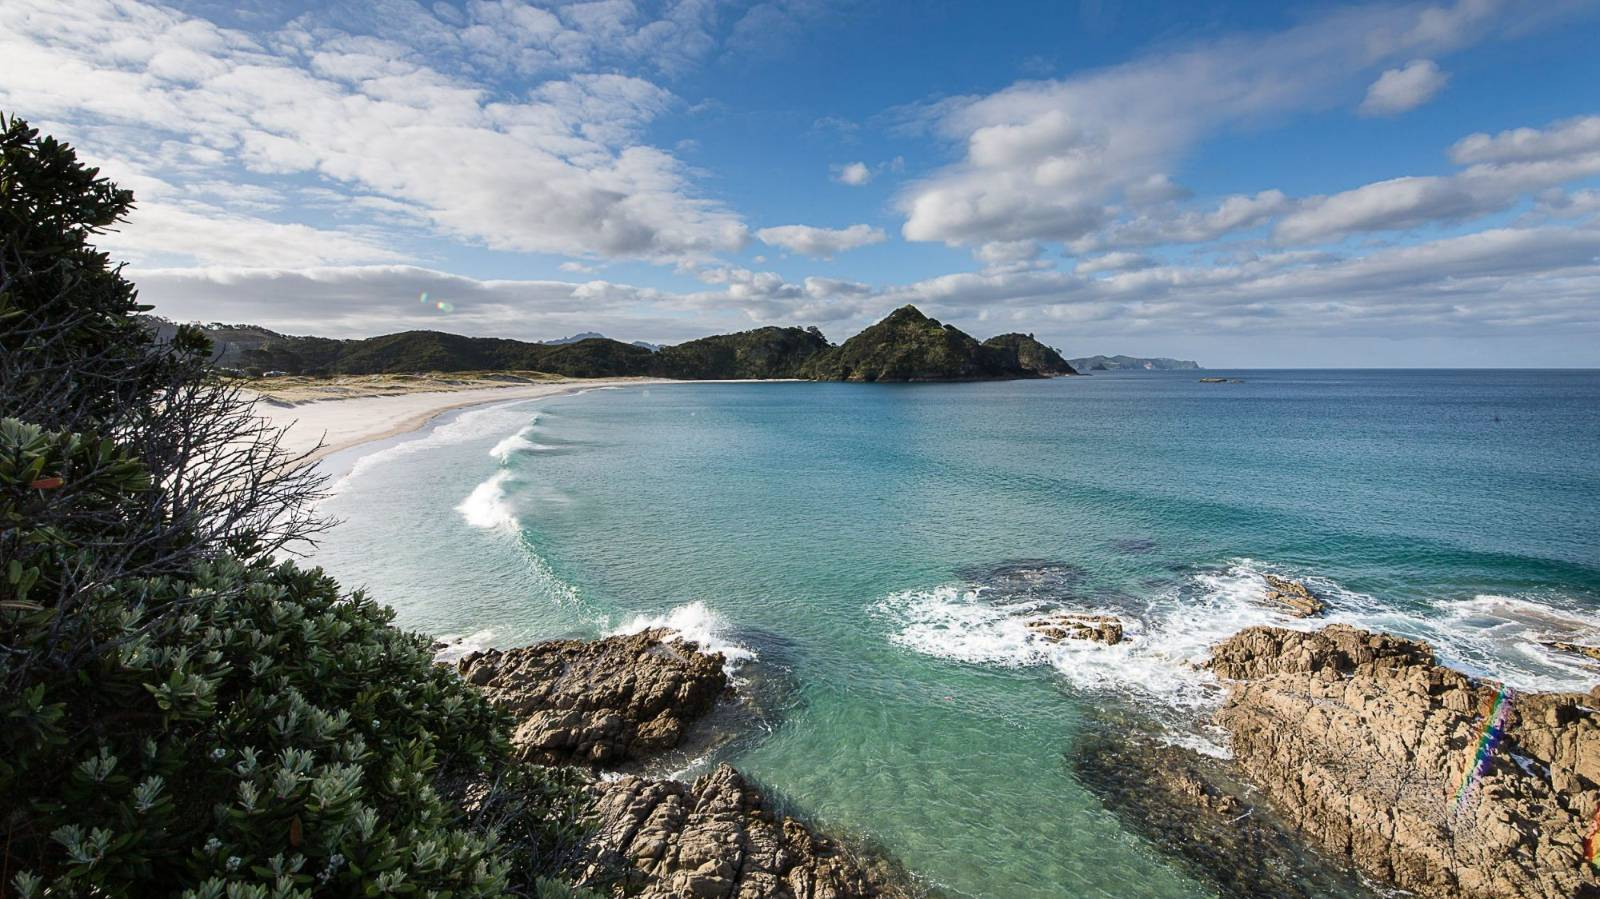 School holidays: Who won the domestic tourism battle?